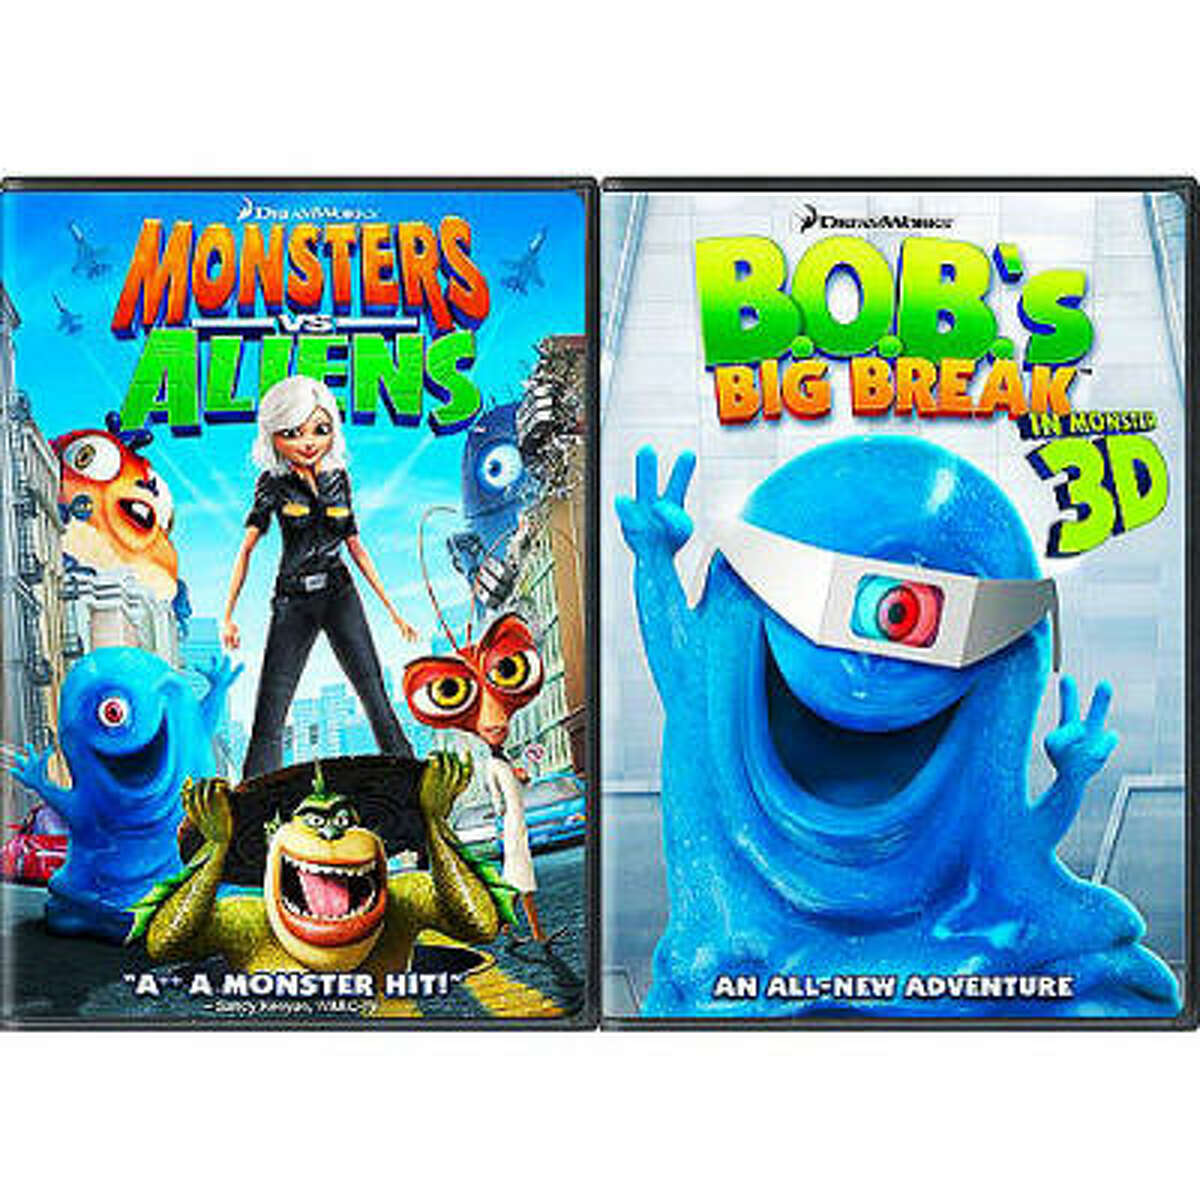 Monsters vs. Aliens/B.O.B.'s Big Break in Monster 3D: Ginormous Double Pack . Cost: $34.98. Or the single disc DVD can be had for $29.98.